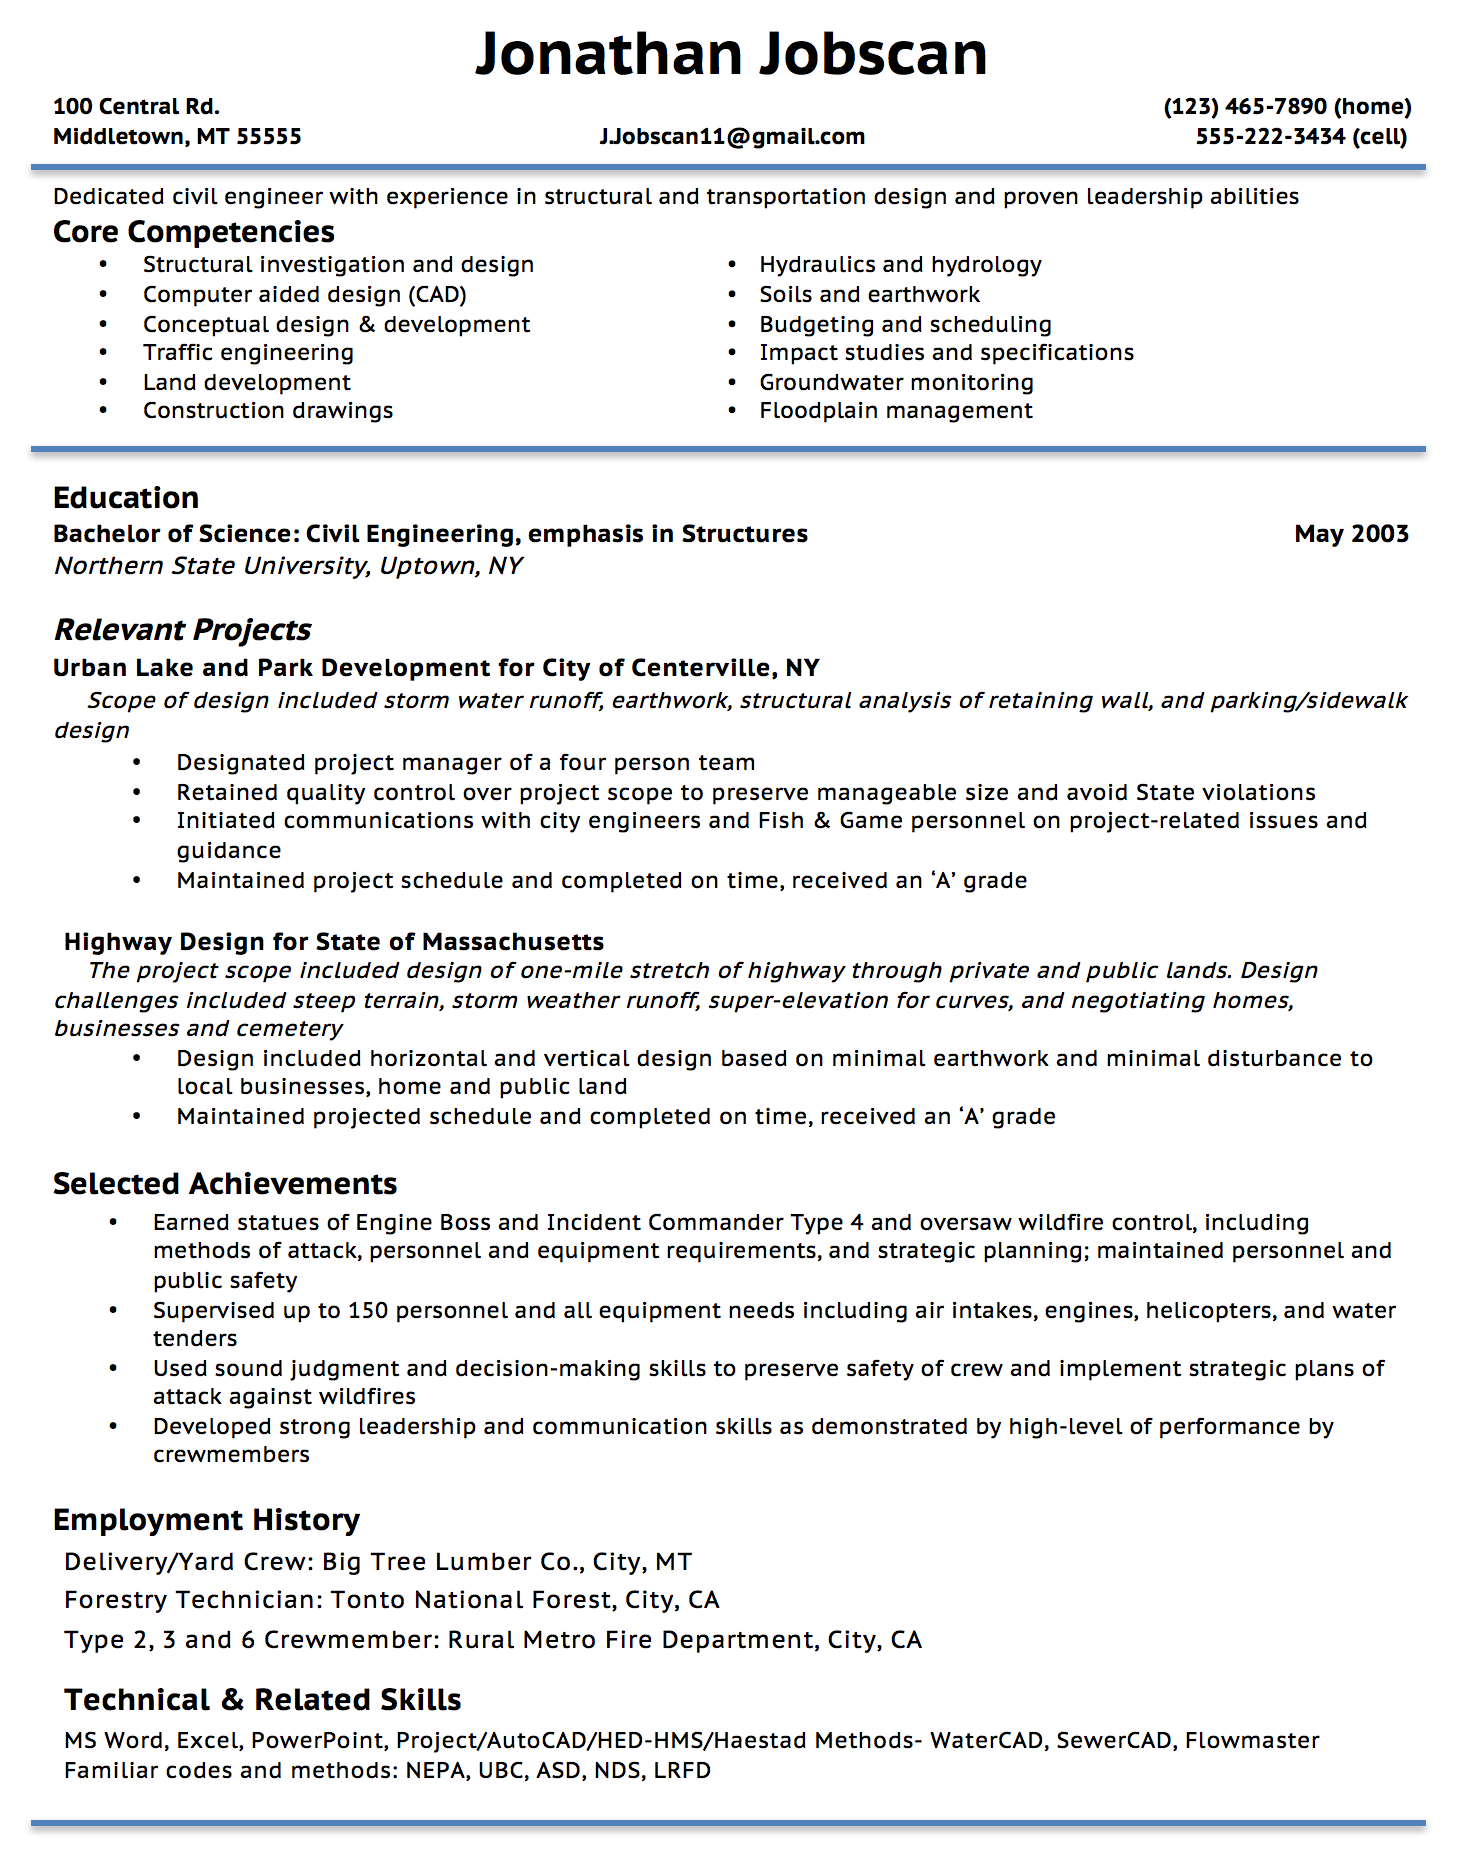 Picnictoimpeachus  Stunning Resume Writing Guide  Jobscan With Outstanding Example Of A Functional Resume Format With Charming Cleaning Services Resume Also Resume For It In Addition Beginner Makeup Artist Resume And How To Write A Good Resume For A Job As Well As Standard Resume Font Additionally Police Officer Resume Template From Jobscanco With Picnictoimpeachus  Outstanding Resume Writing Guide  Jobscan With Charming Example Of A Functional Resume Format And Stunning Cleaning Services Resume Also Resume For It In Addition Beginner Makeup Artist Resume From Jobscanco